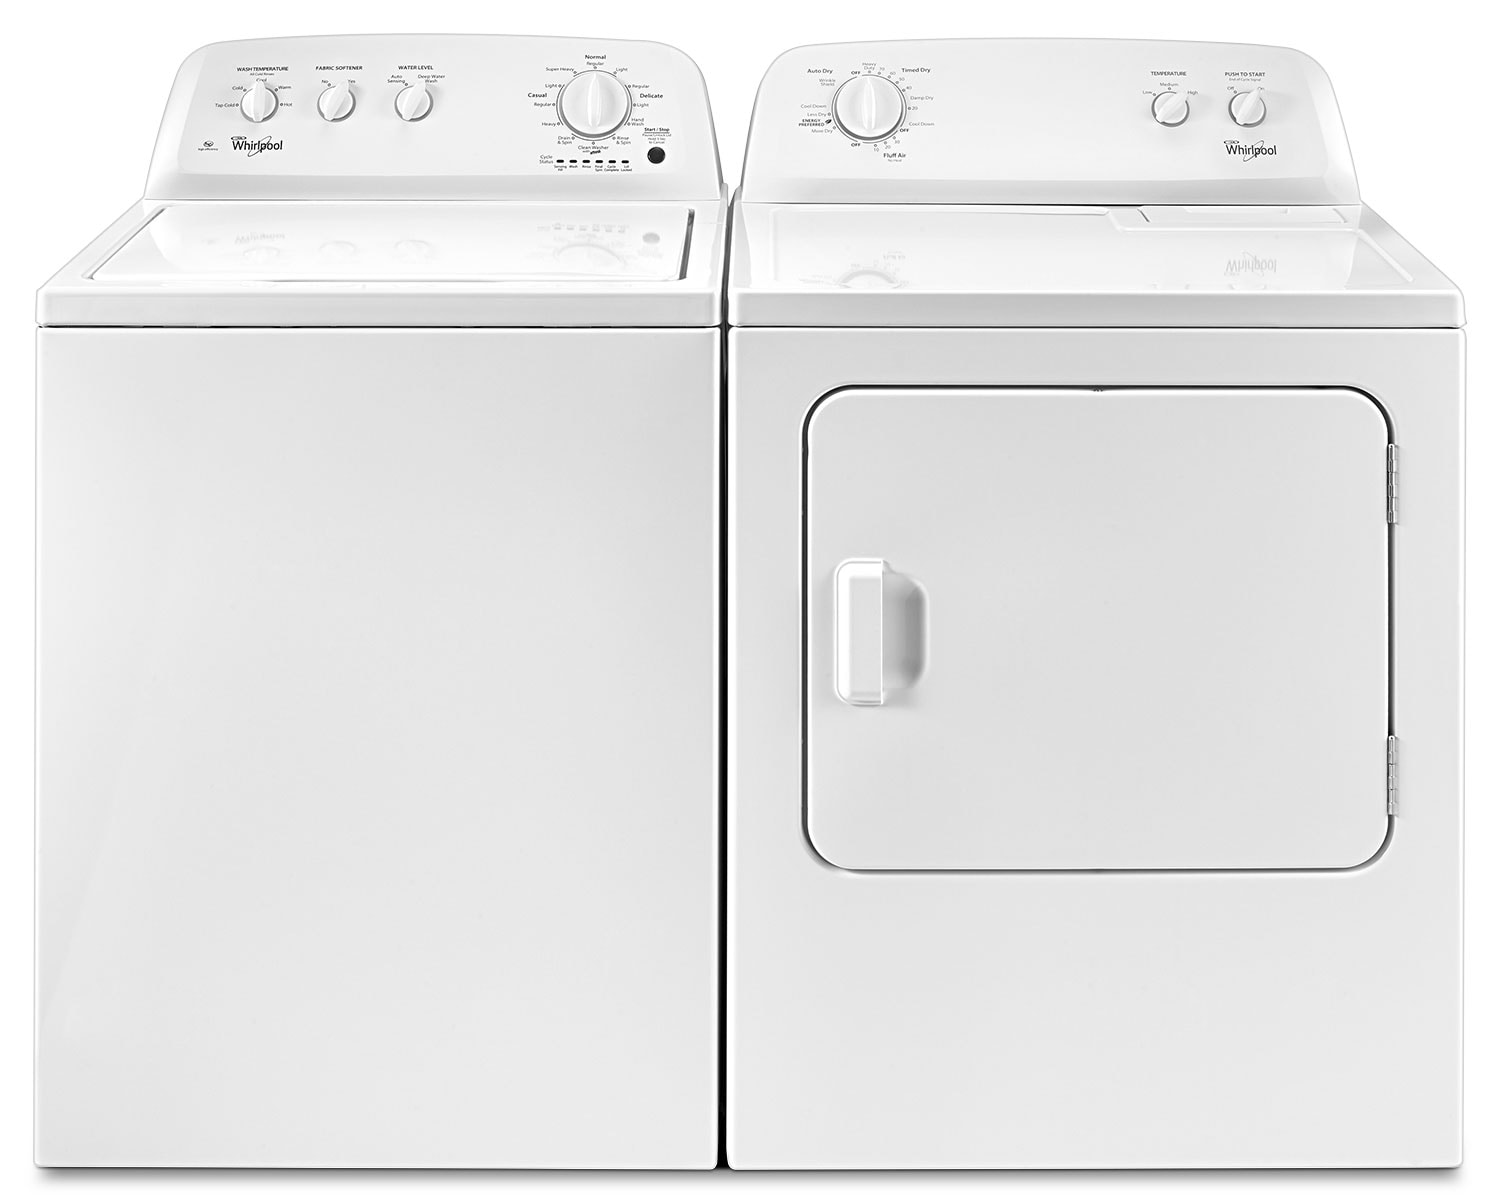 Whirlpool 4.0 Cu. Ft. Top-Load Washer and 7.0 Cu. Ft. Electric Dryer – White